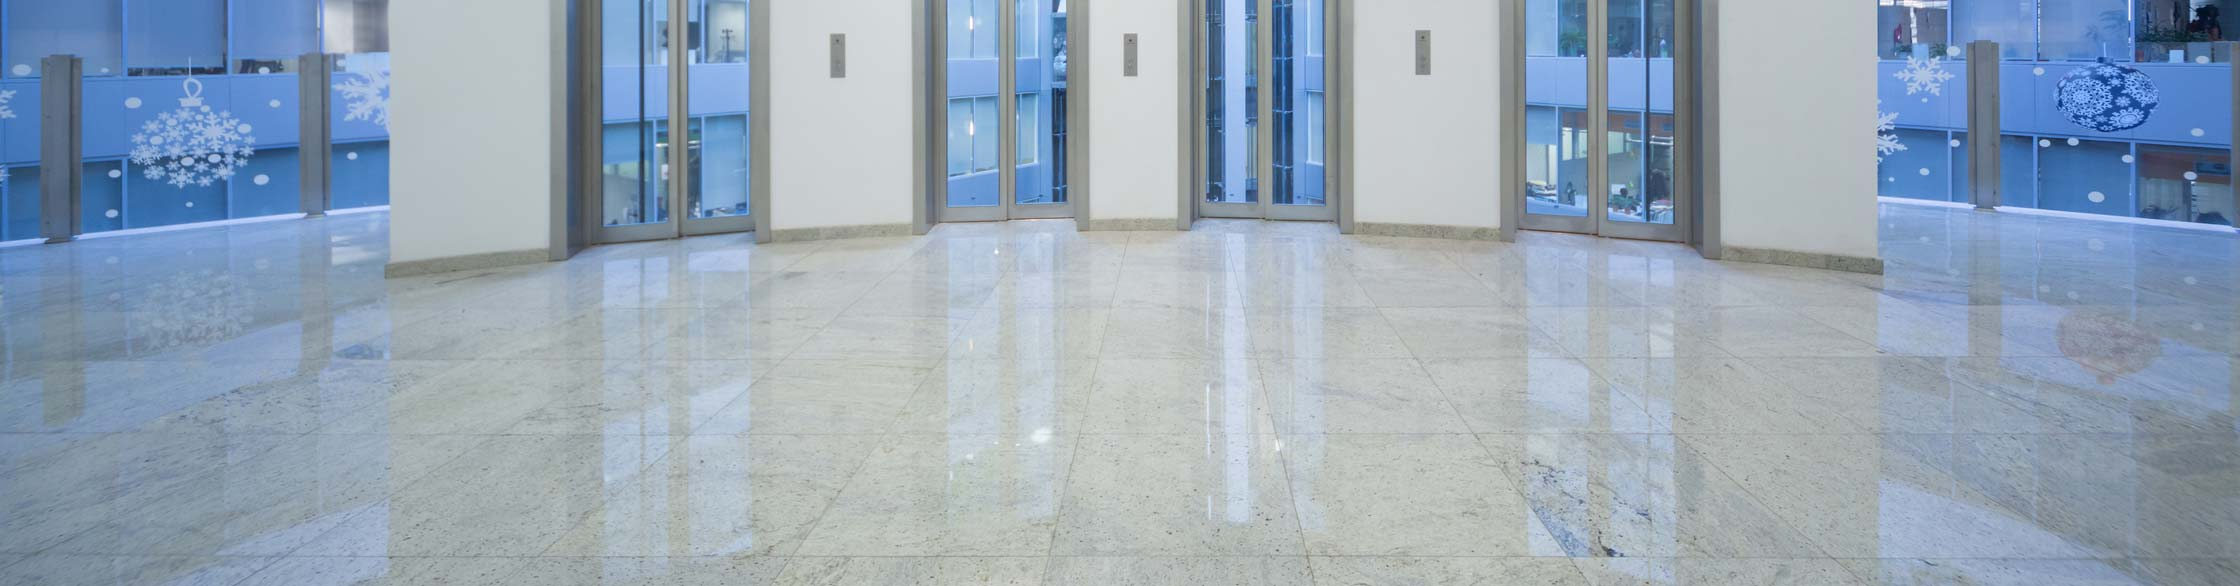 Stone And Marble Restoration Granite Floor Polishing Service Travertine Floor Restoration Near Me Marble Floor Cleaning Company Travertine Floor Cleaning Service Stone Floor Cleaning Mint Condition